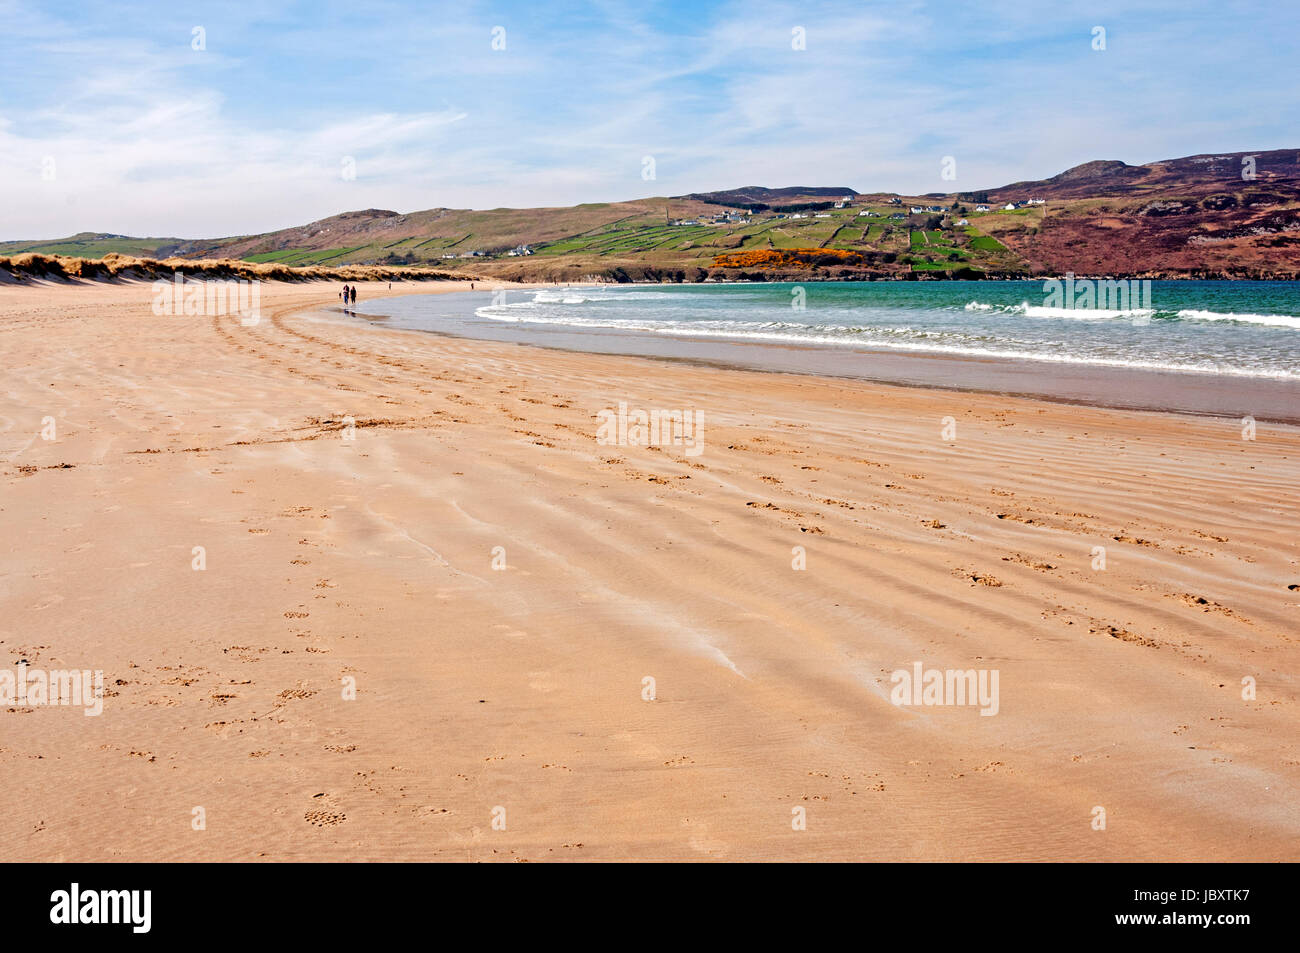 Killahoey Beach, a blue flag beach in Dunfanaghy, County Donegal, Ireland - Stock Image